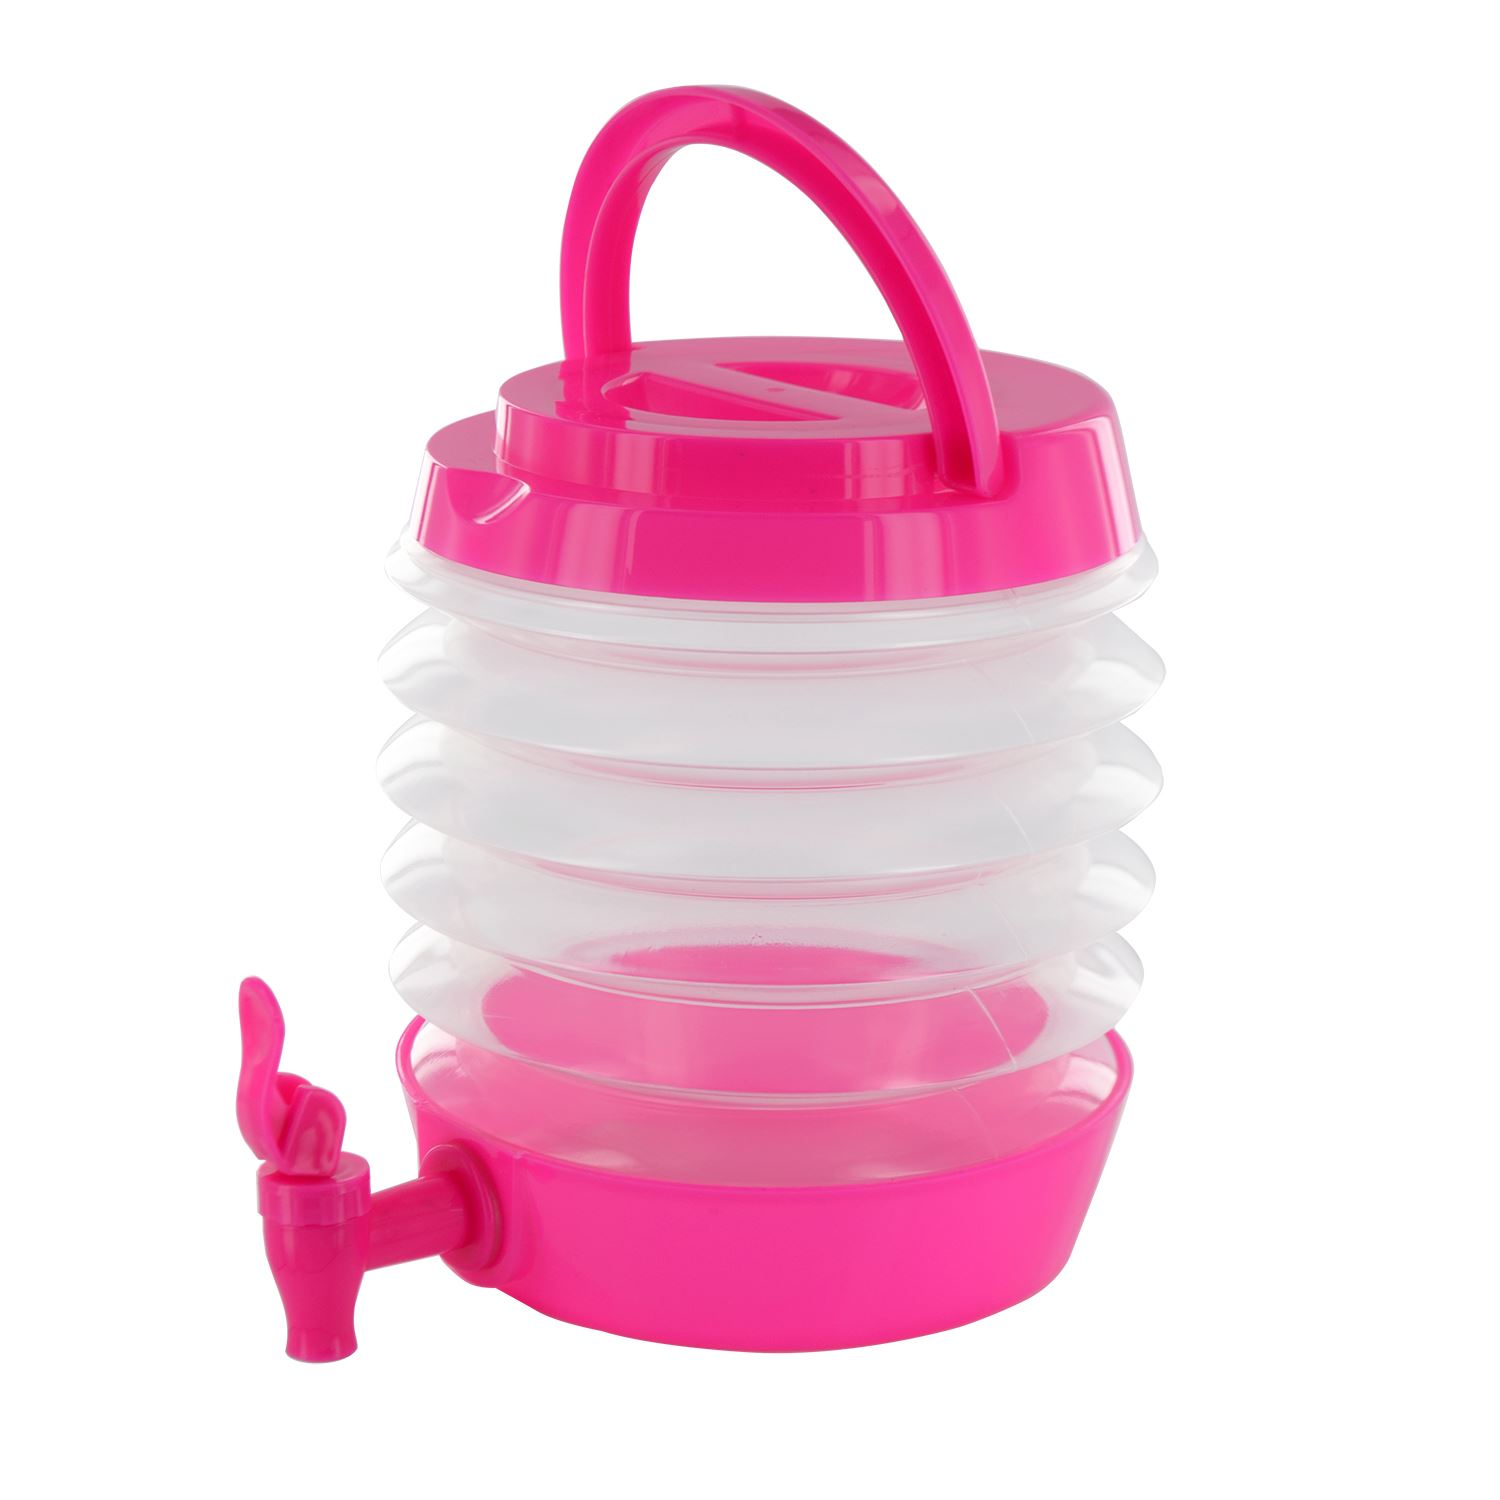 Collapsible Beverage Container Drink Dispenser – 2 Gallon Large Plastic Portable For Outdoor Picnics Parties And More For Adults And Kids – COLORS VARY by Ideas In Life $ $ 18 77 Prime.